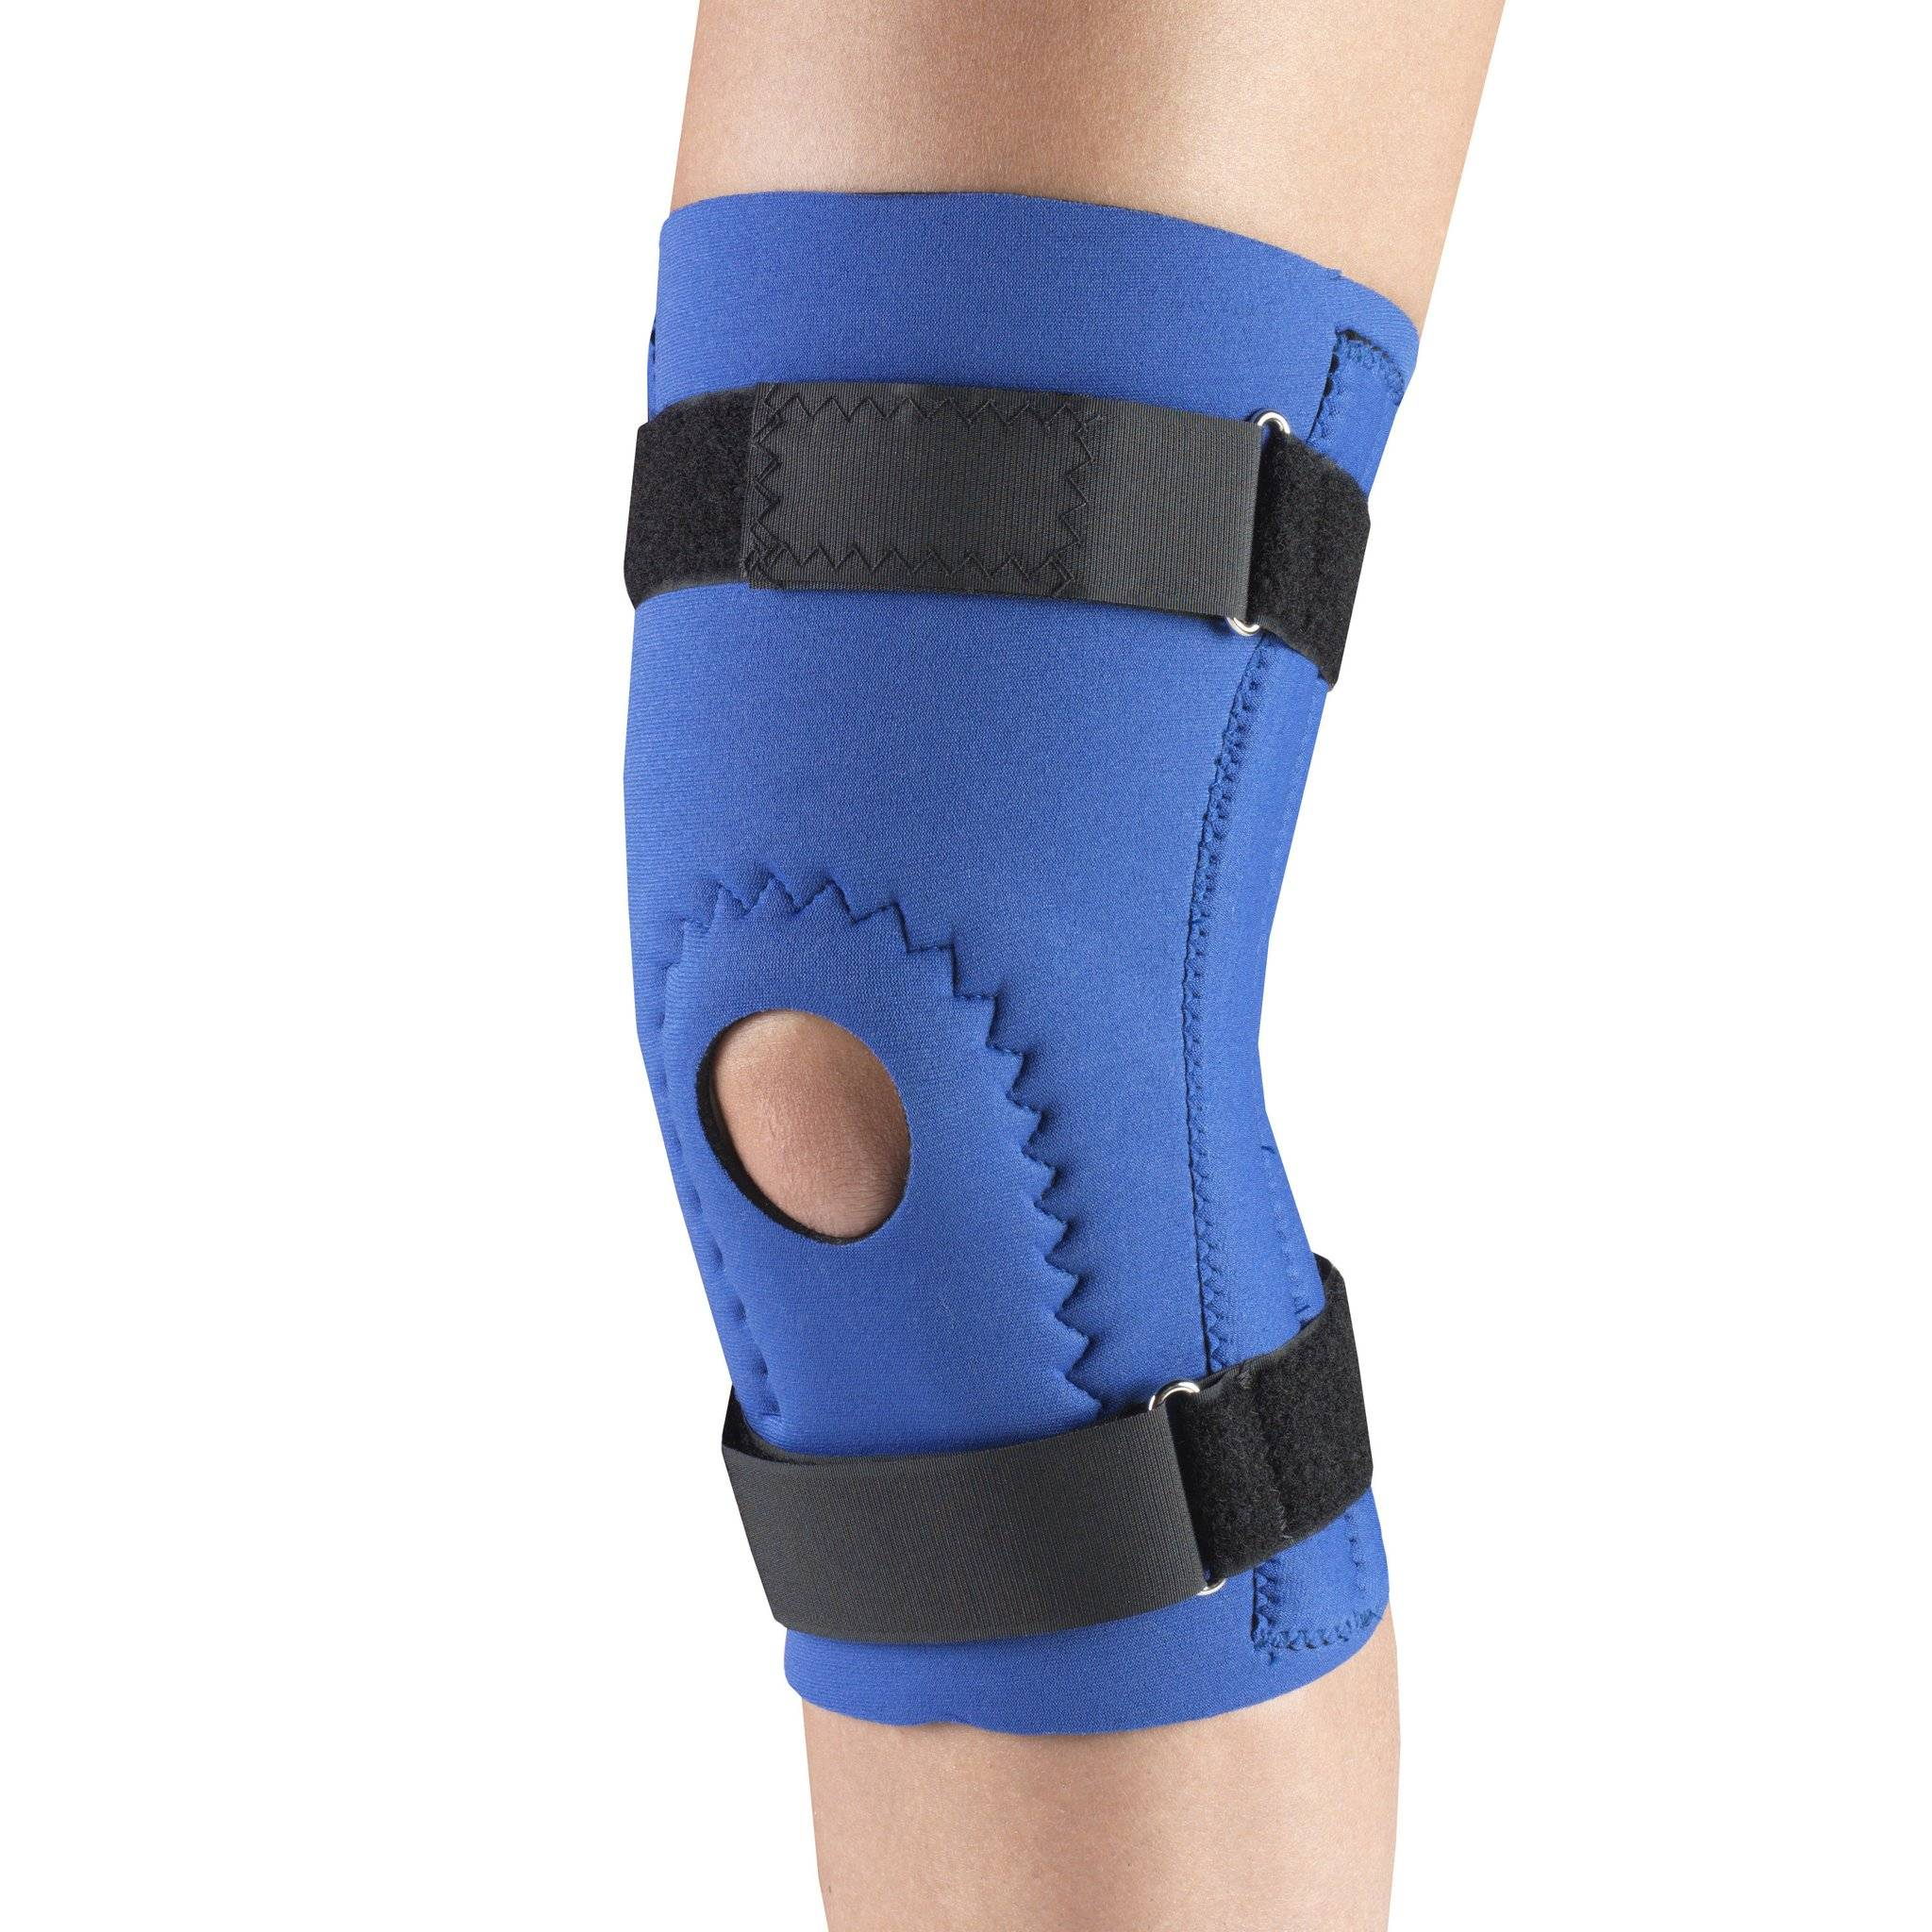 0144 / NEOPRENE KNEE SLEEVE - HOR-SHU PAD, SPIRAL STAYS